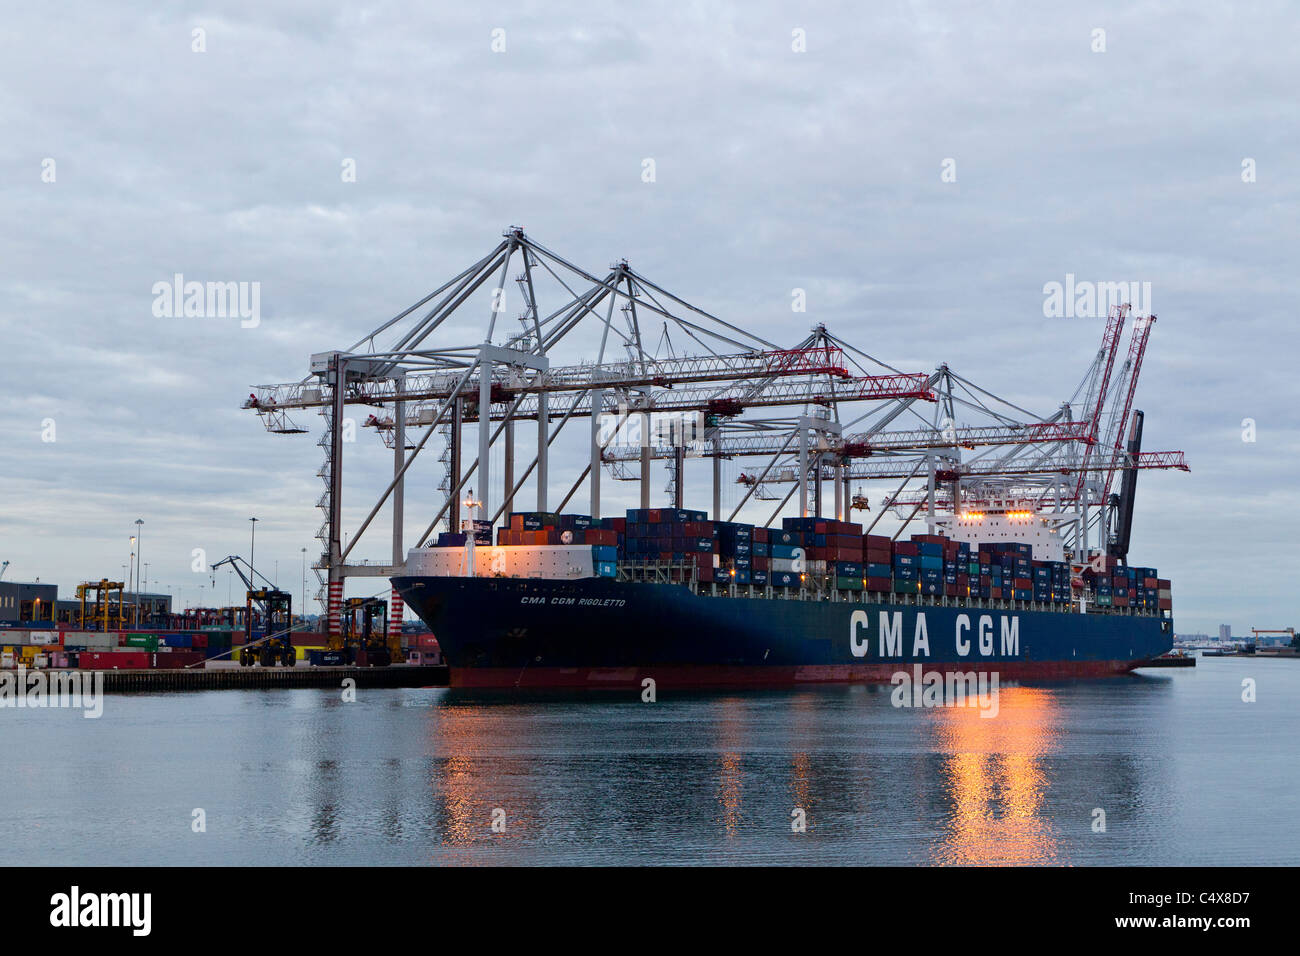 A container ship waits to be unloaded at the port of Southampton. - Stock Image